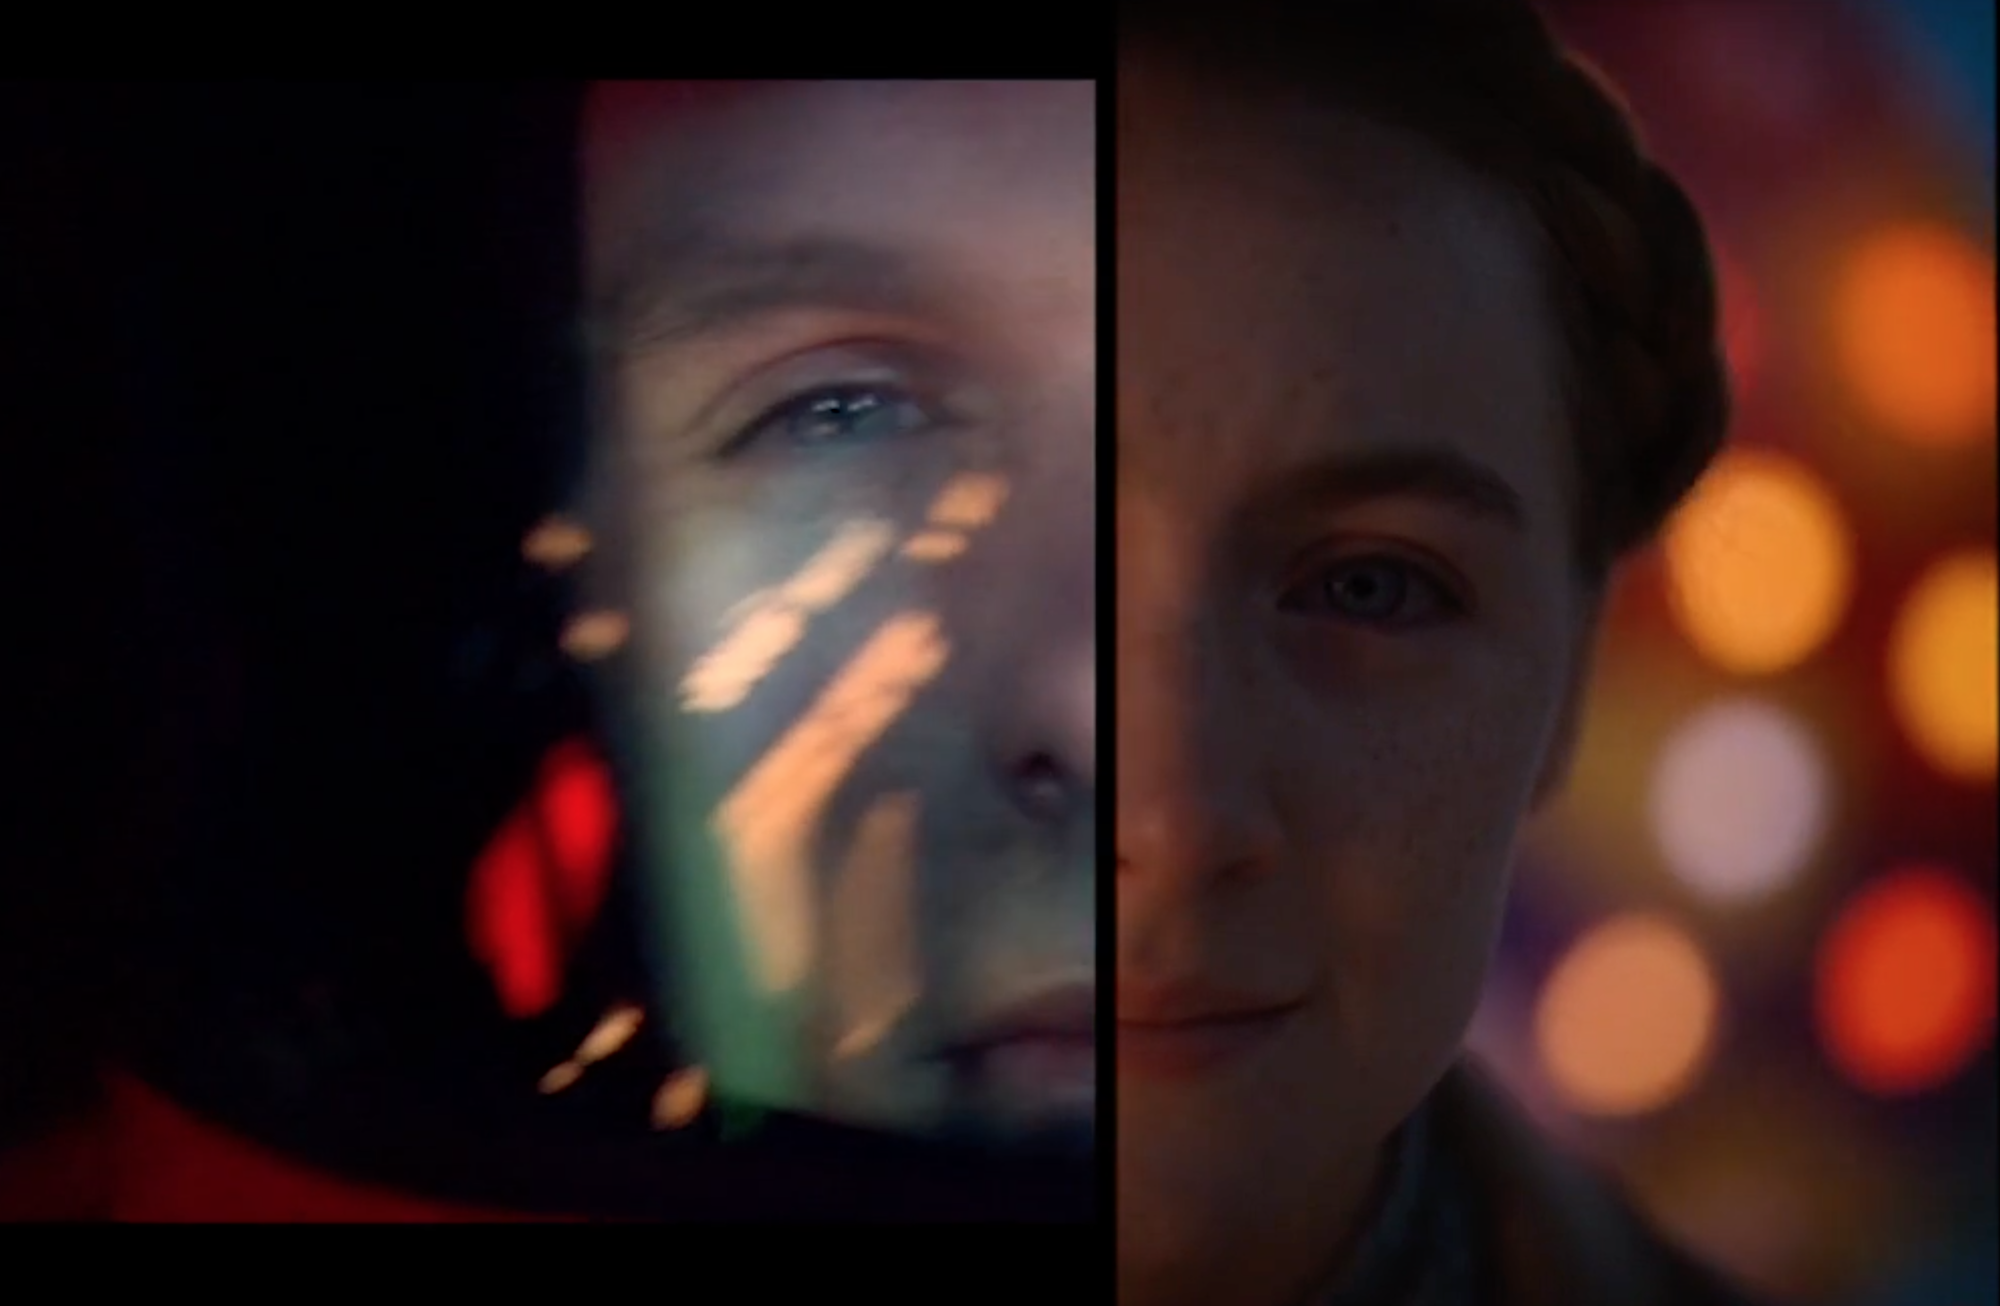 Wes Anderson ammira Stanley Kubrick, e si vede!